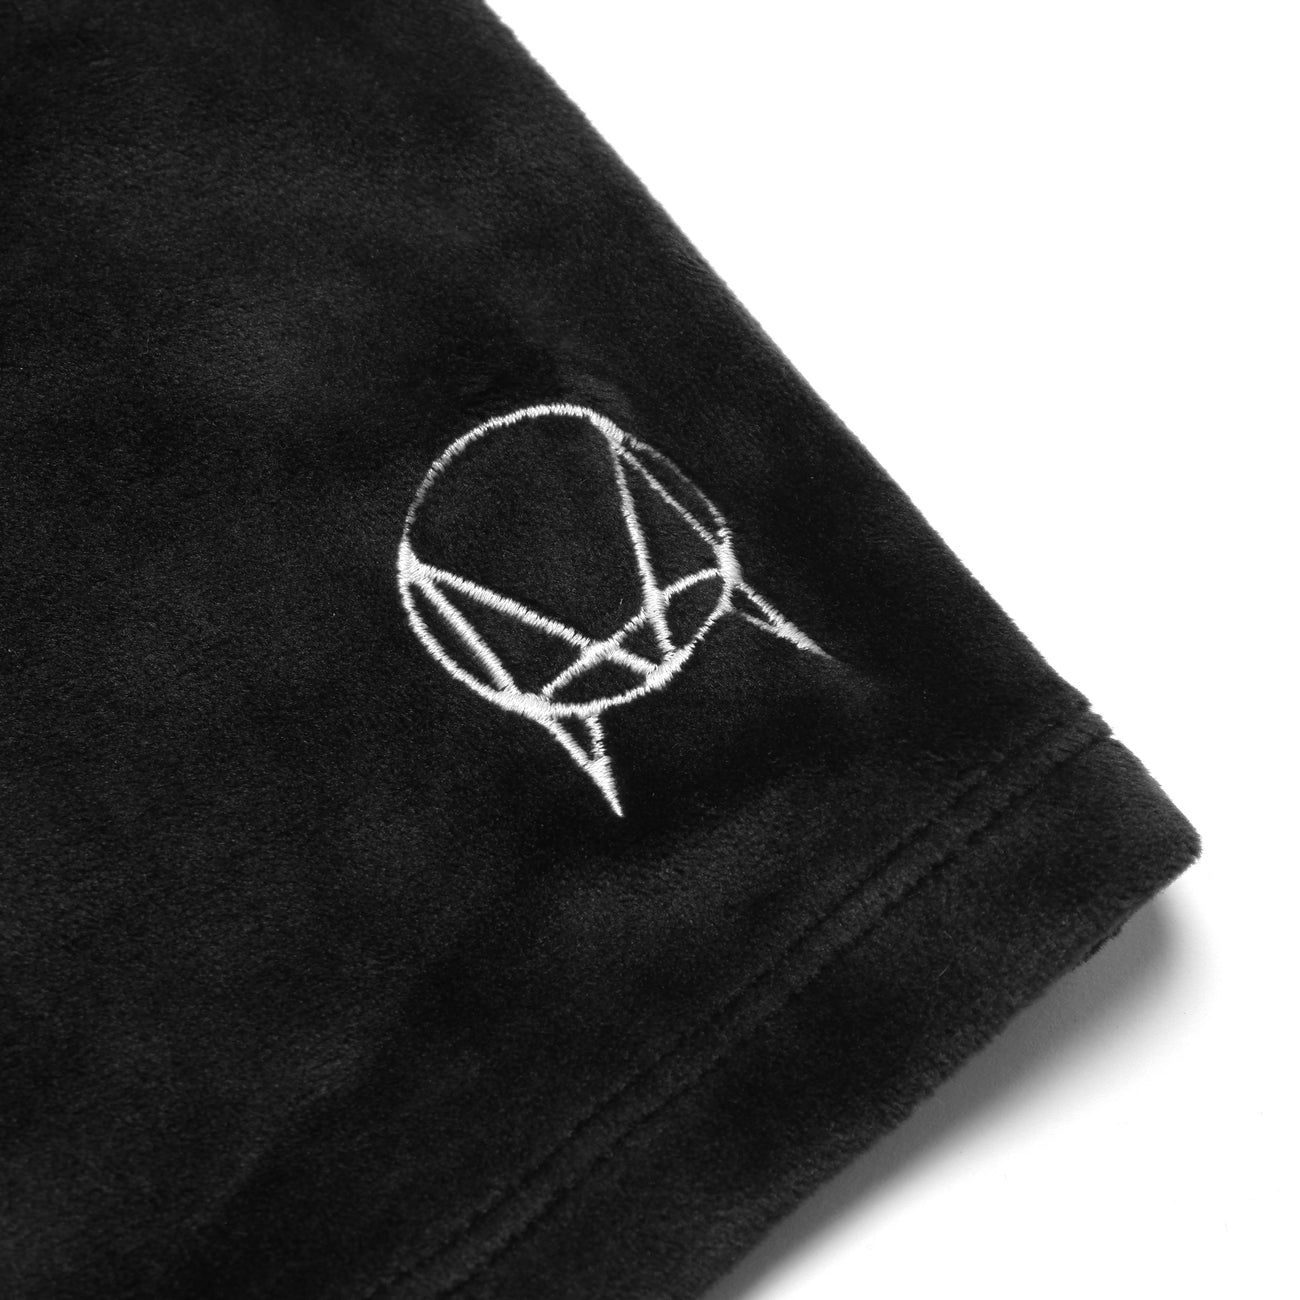 OWSLA VELOUR BIKE SHORTS - BLACK